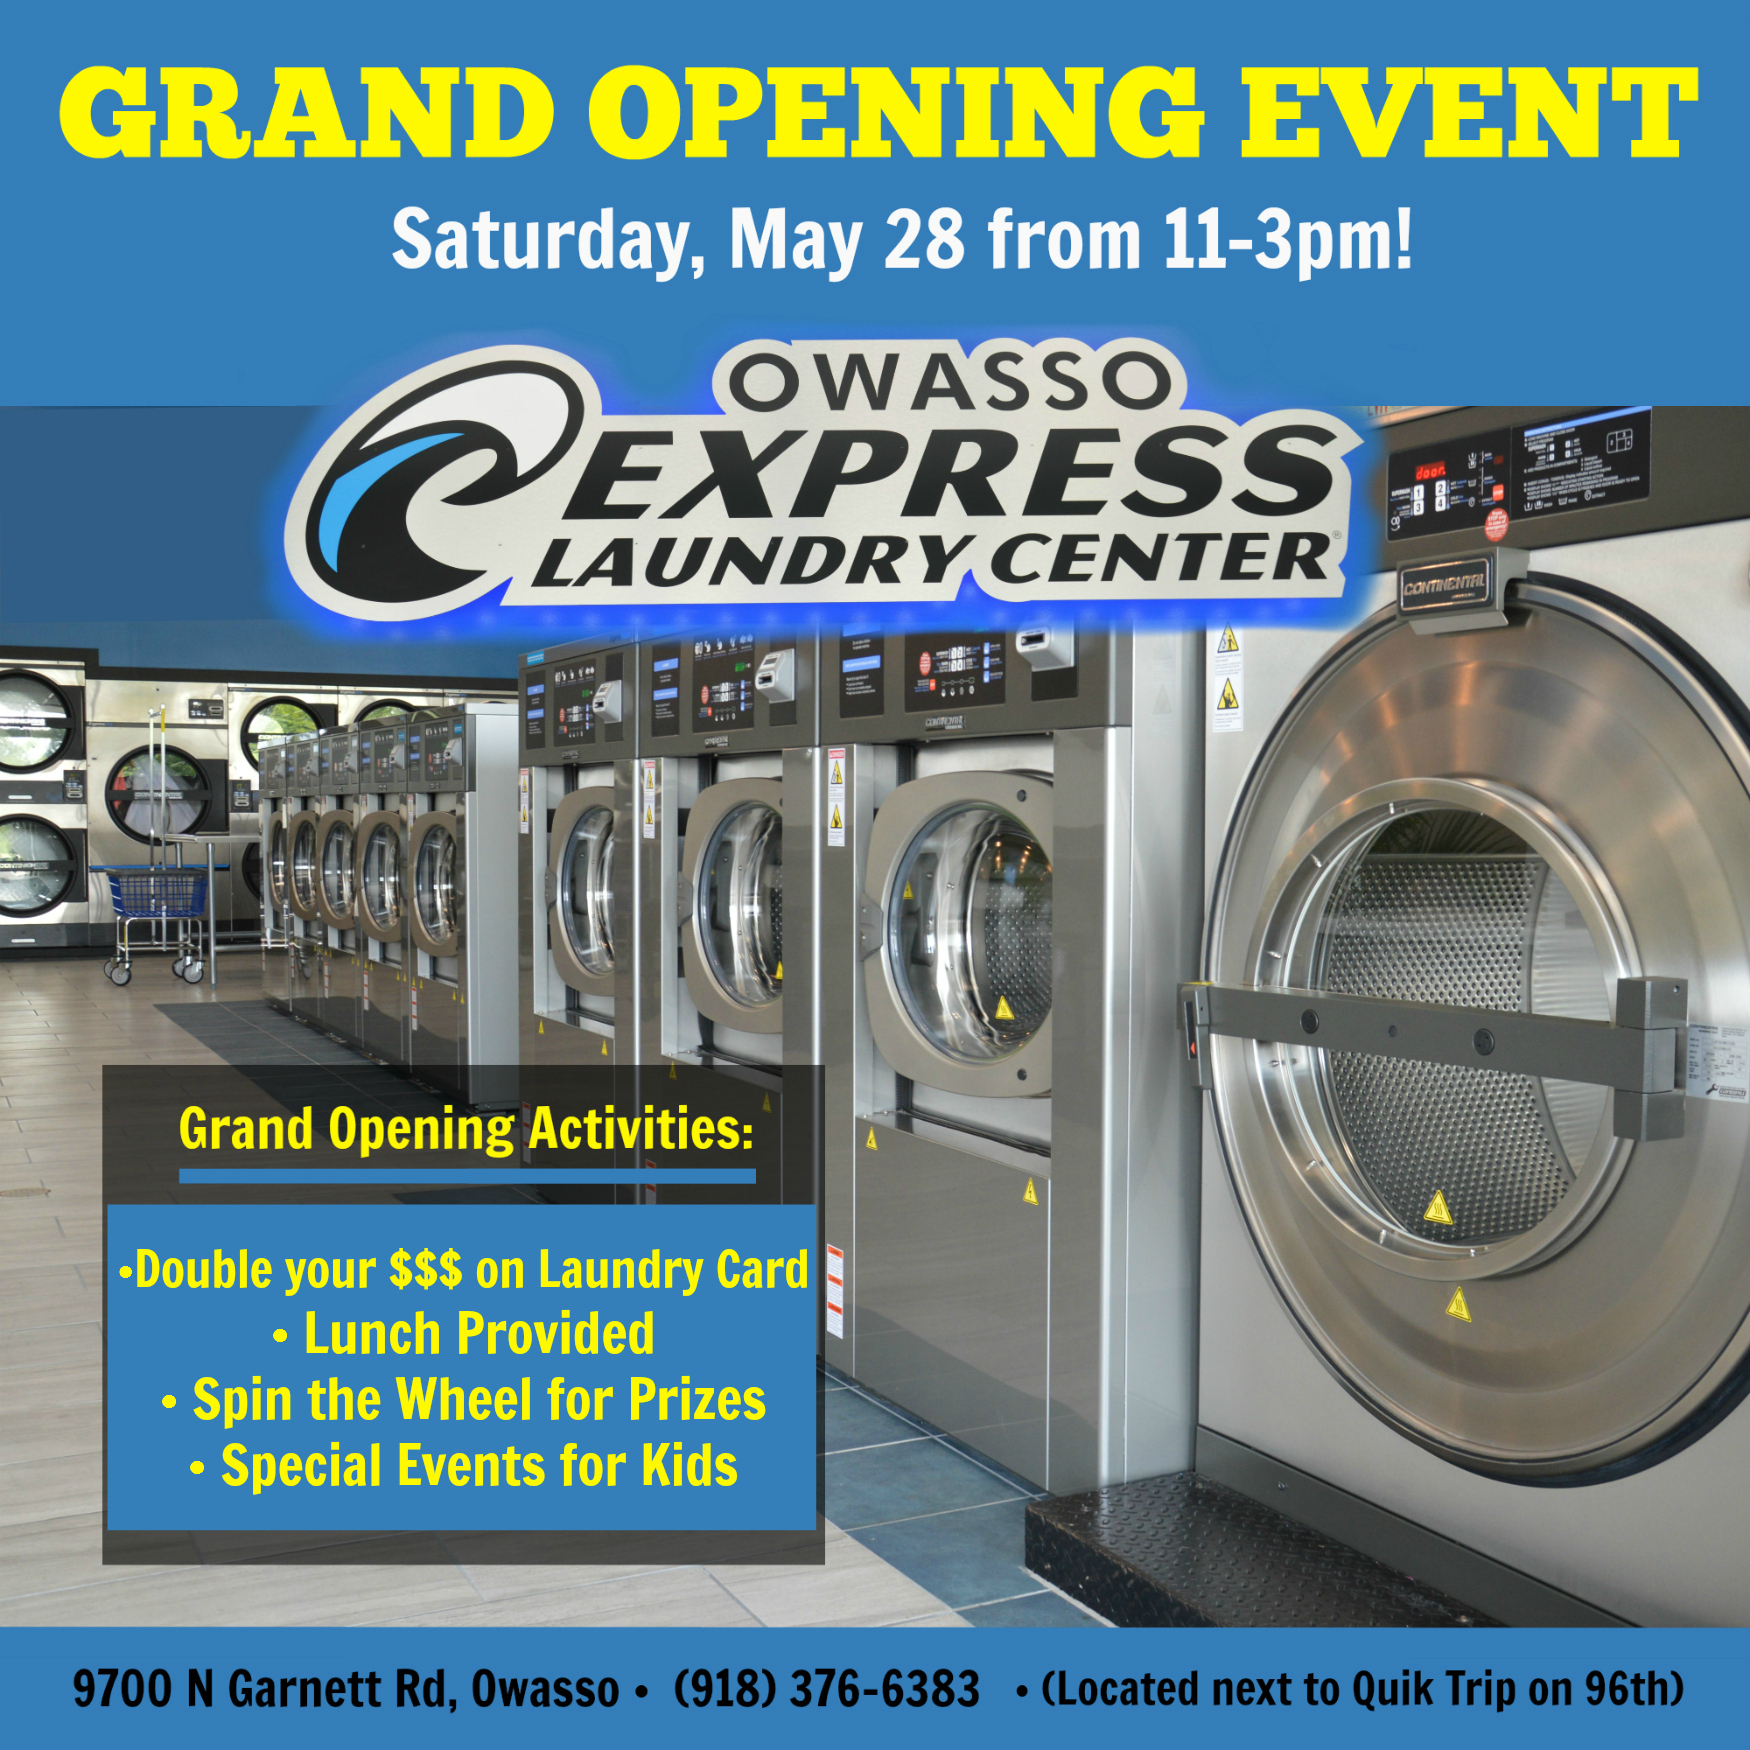 Owasso express laundry to host grand opening event may for Acapulco golden tans salon owasso ok